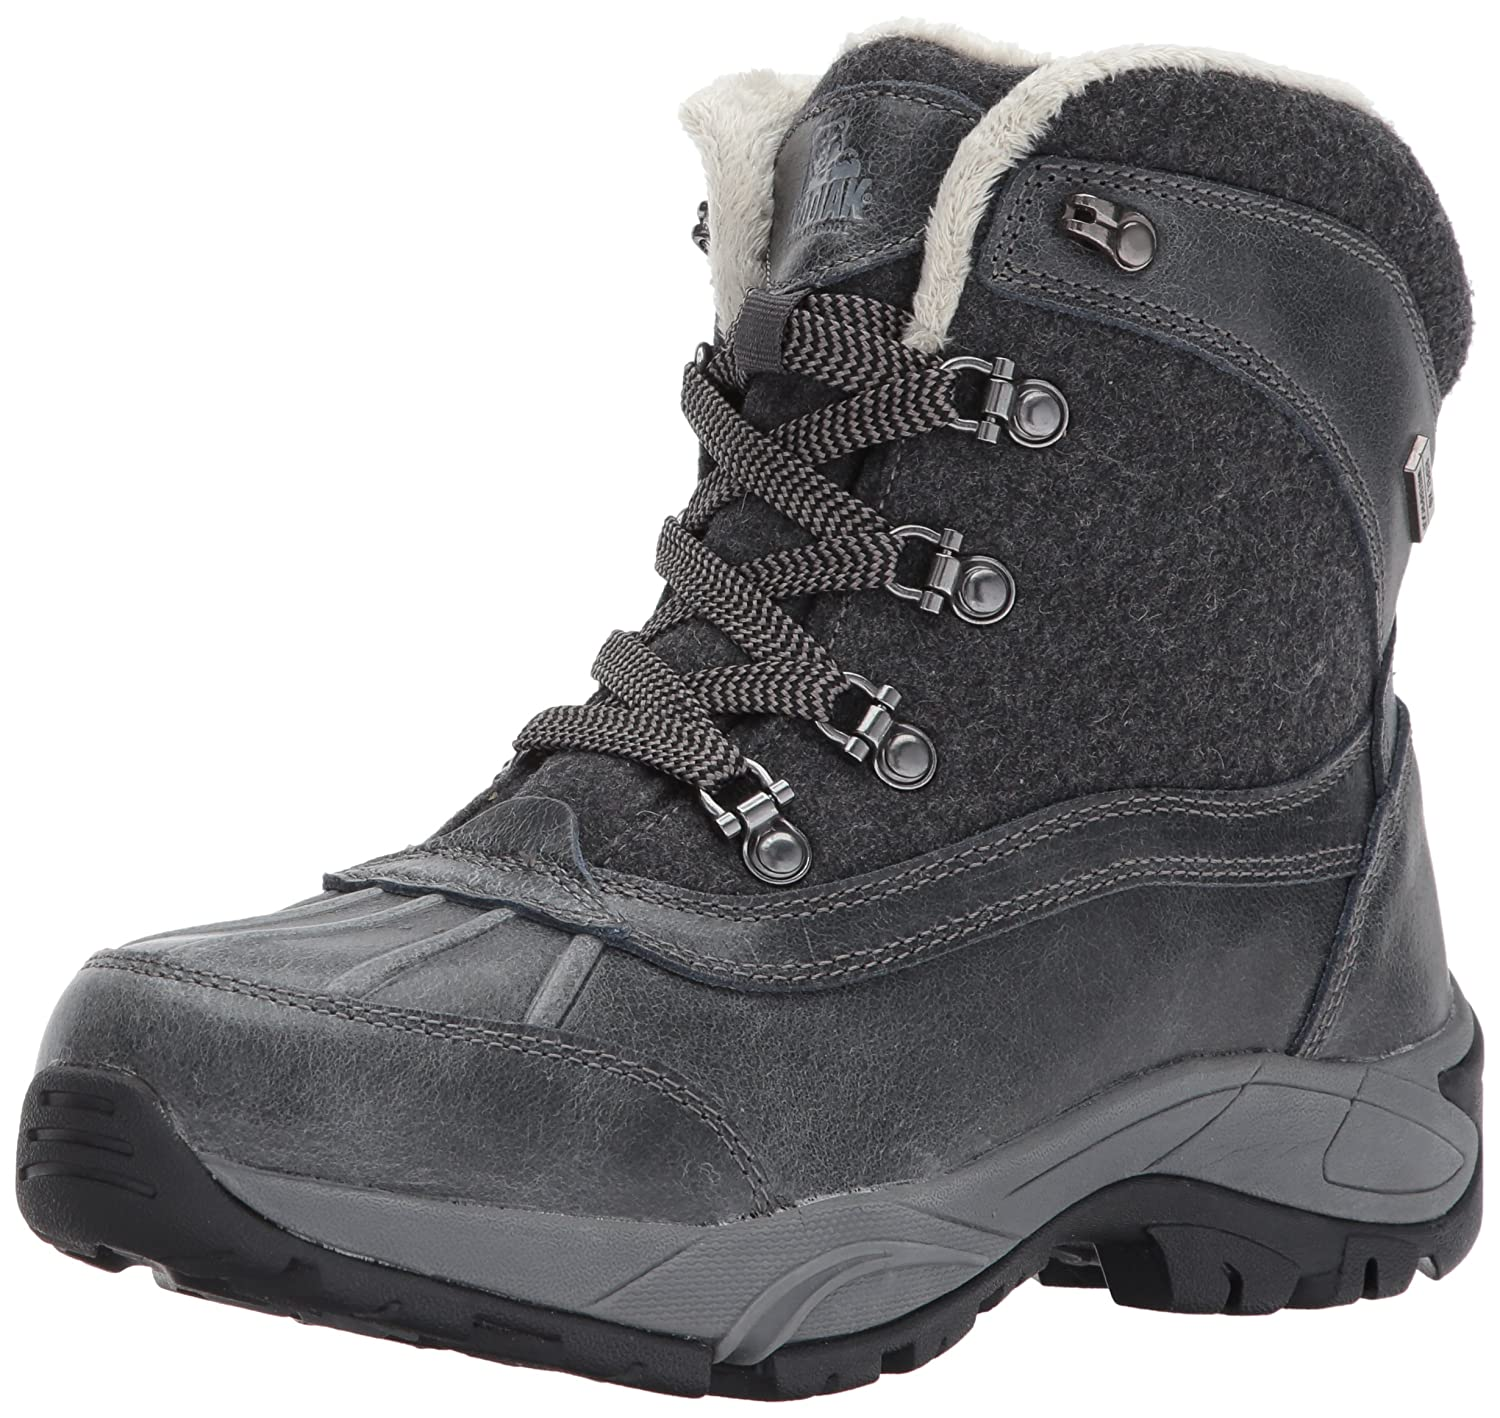 Kodiak Women's Rochelle Snow Boot B01MQDDX2D 6 B(M) US|Black